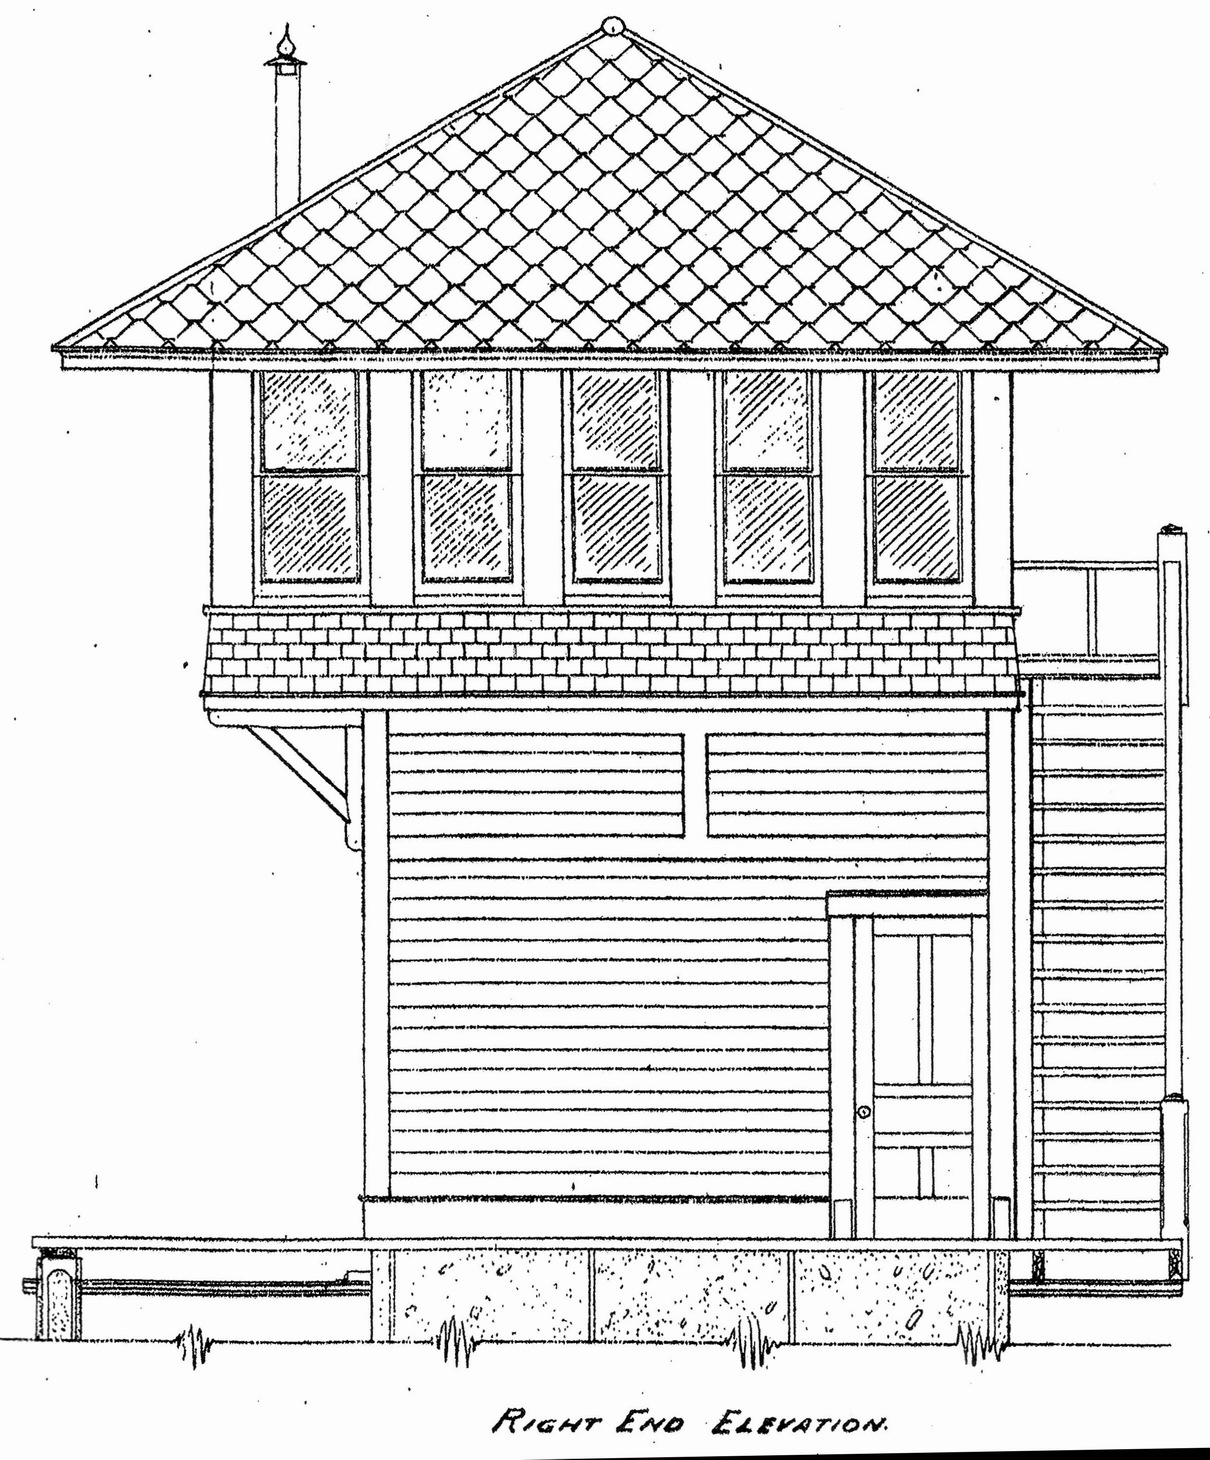 Outstanding Architectural Plans 1210 x 1460 · 519 kB · jpeg